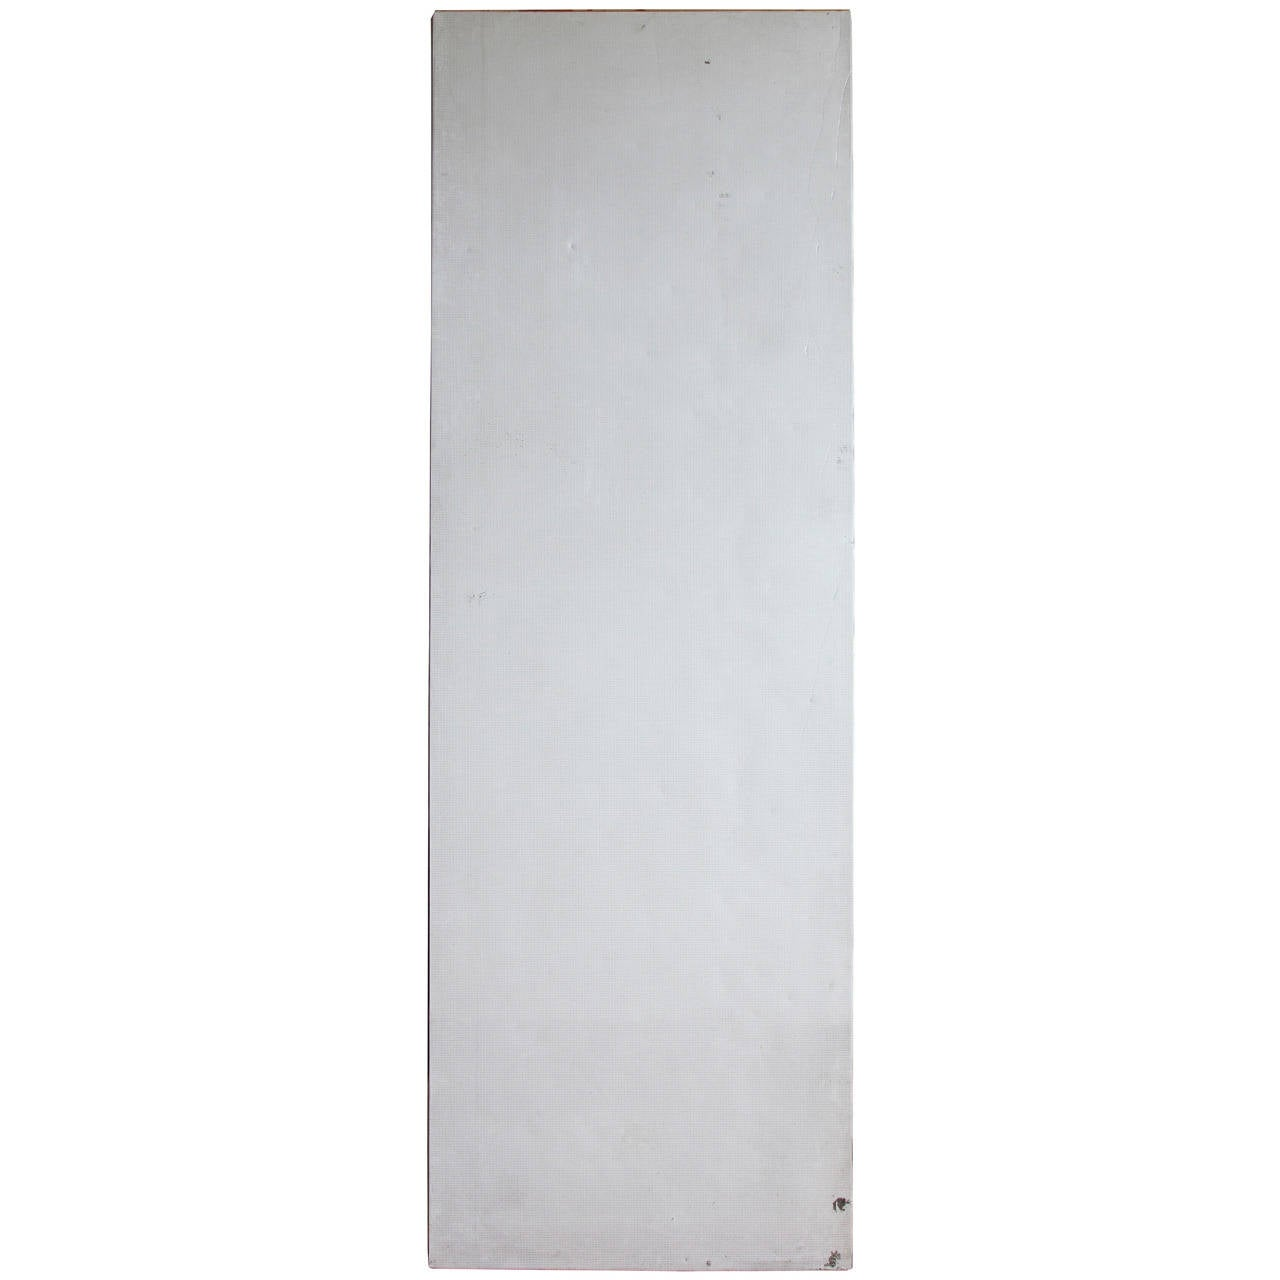 Architectural Wall Panel by Jean Prouvé For Sale